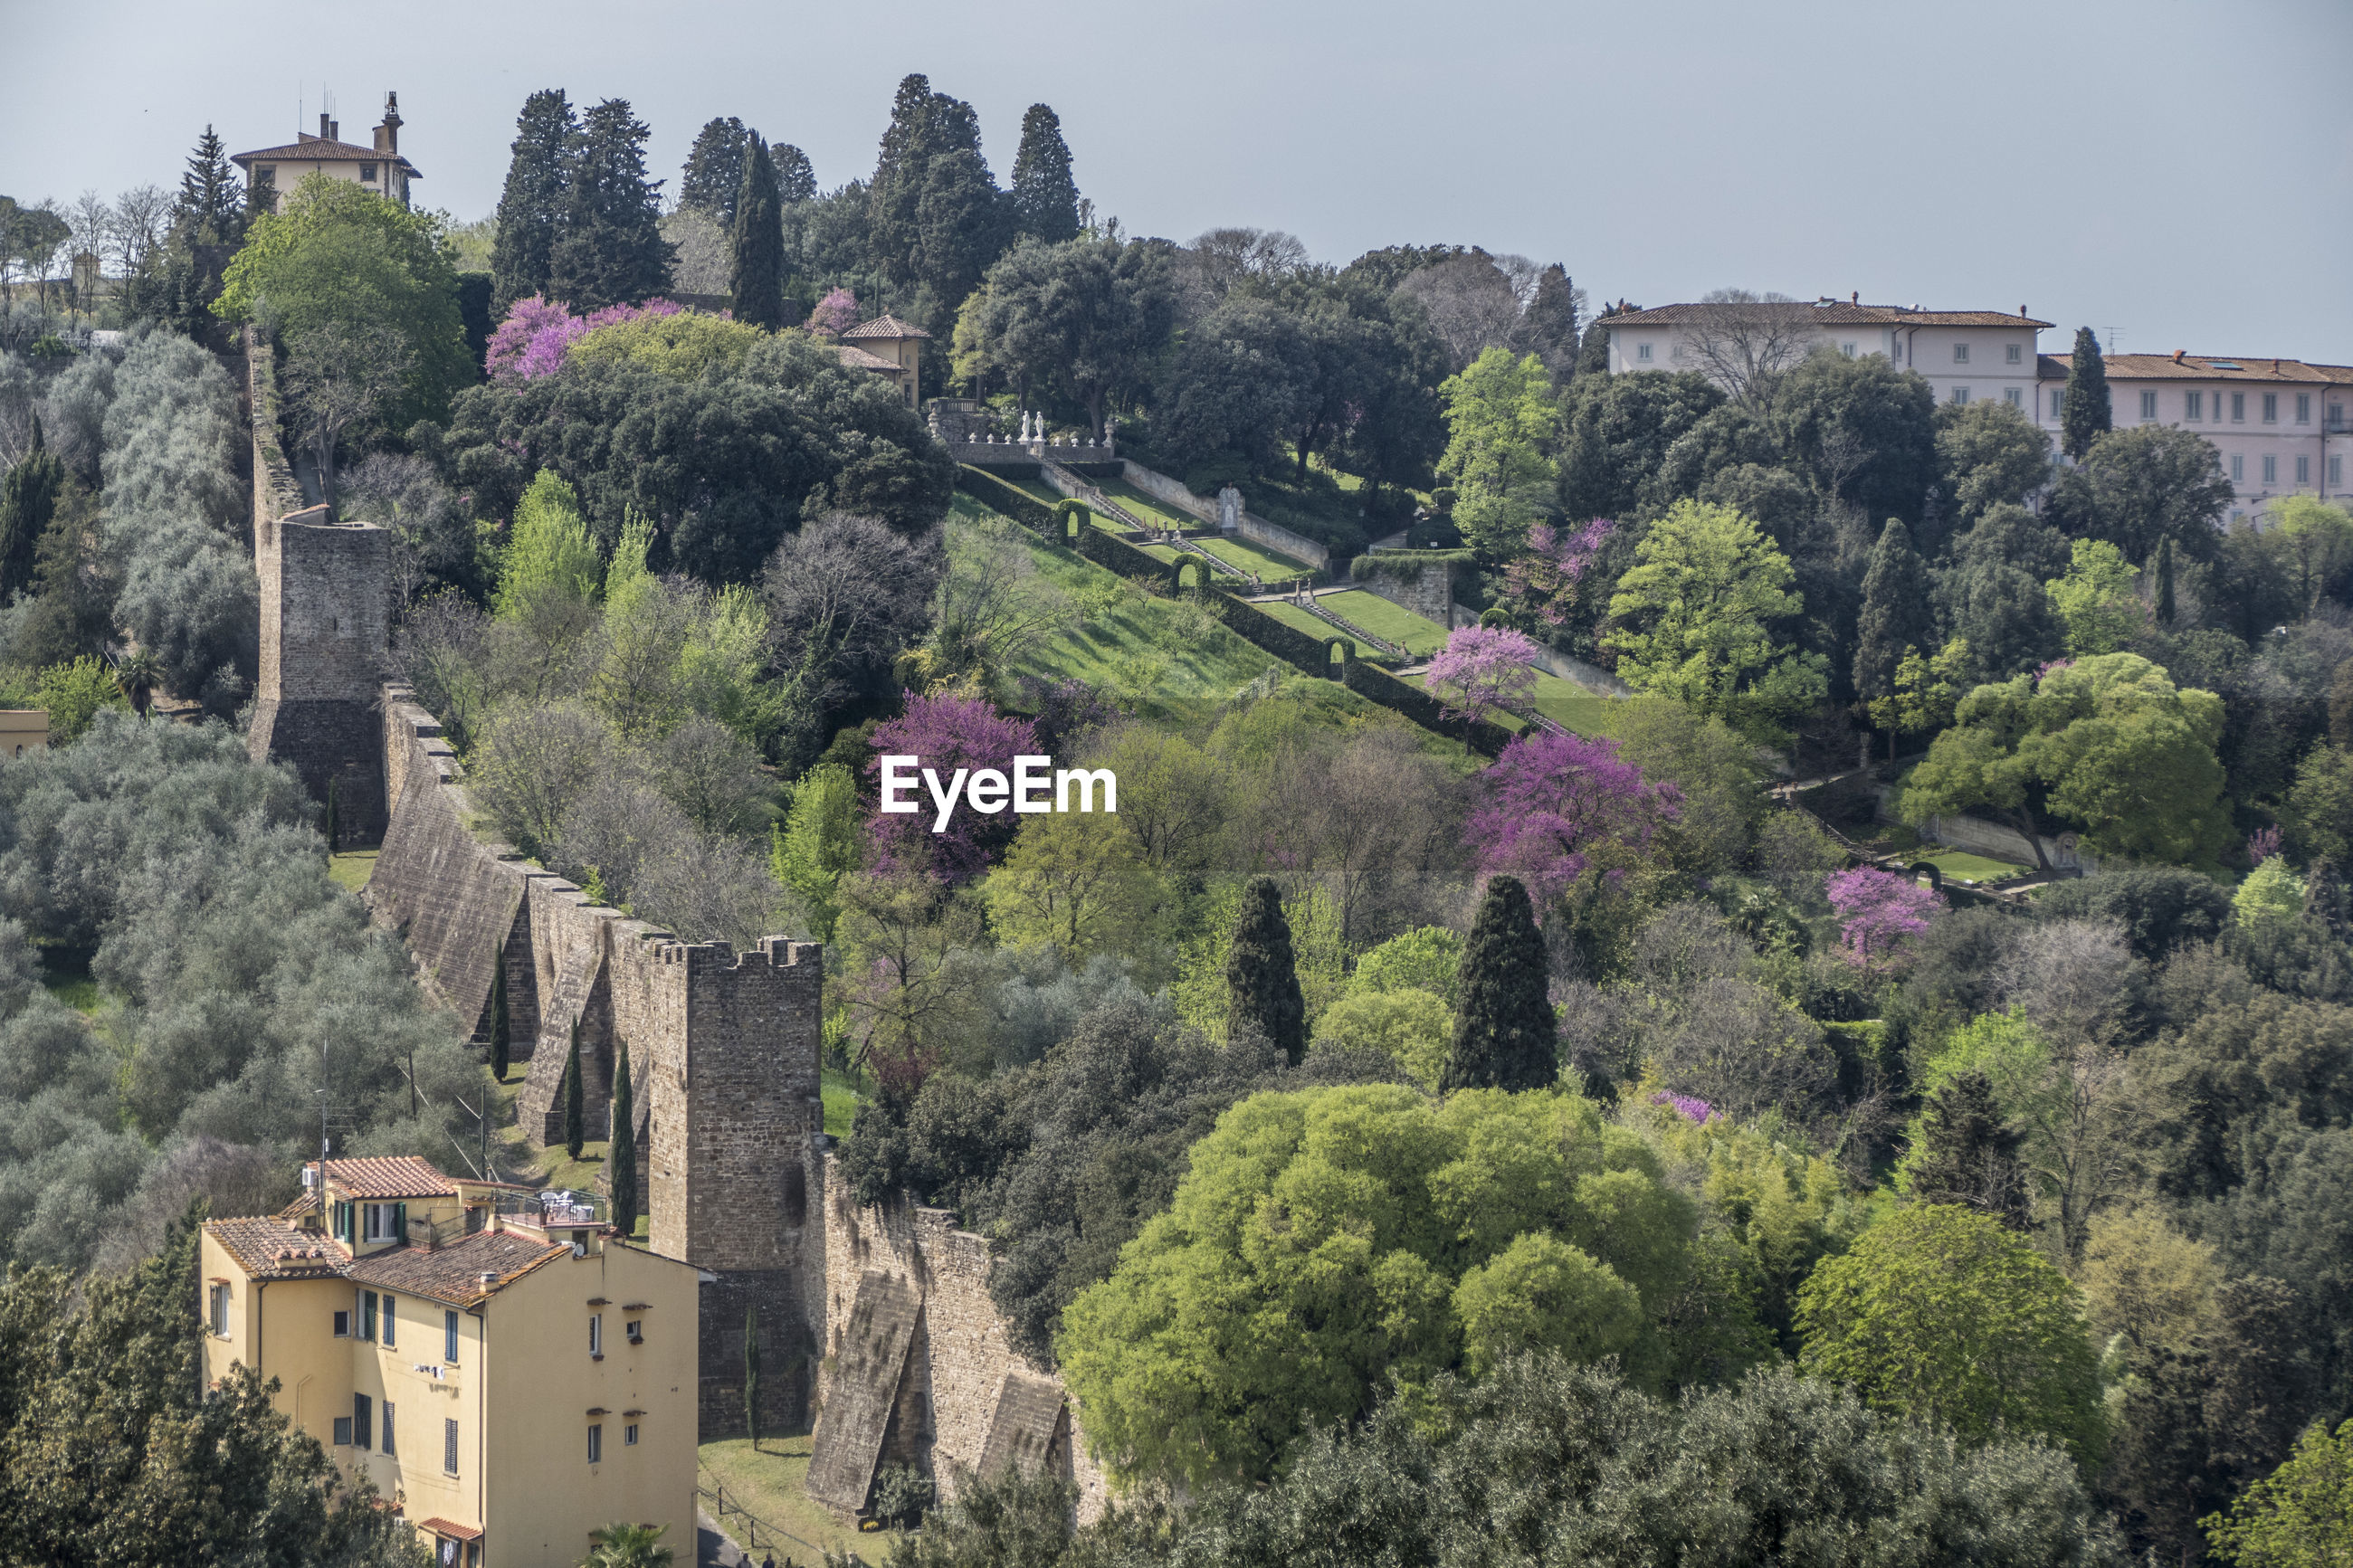 PANORAMIC VIEW OF TREES AND BUILDINGS